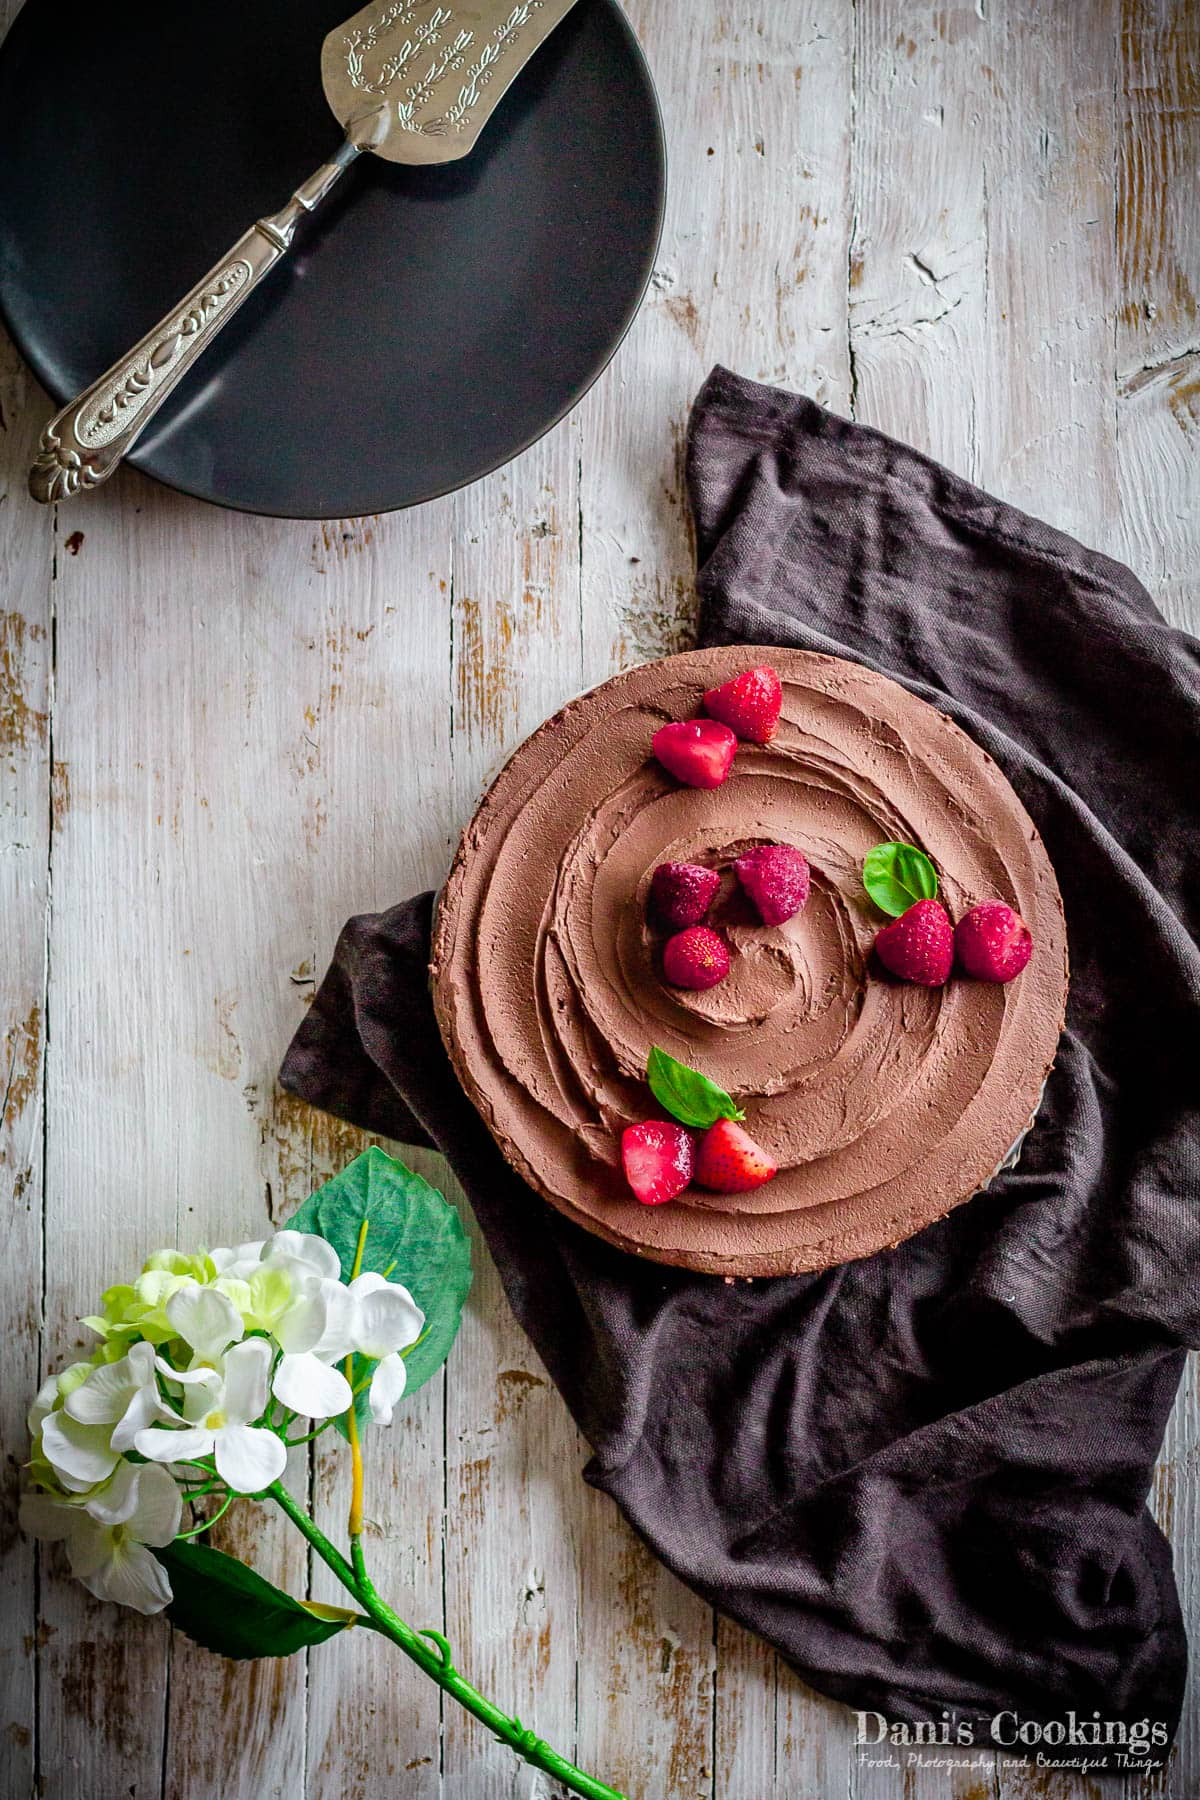 mousse cake with berries on a wooden background